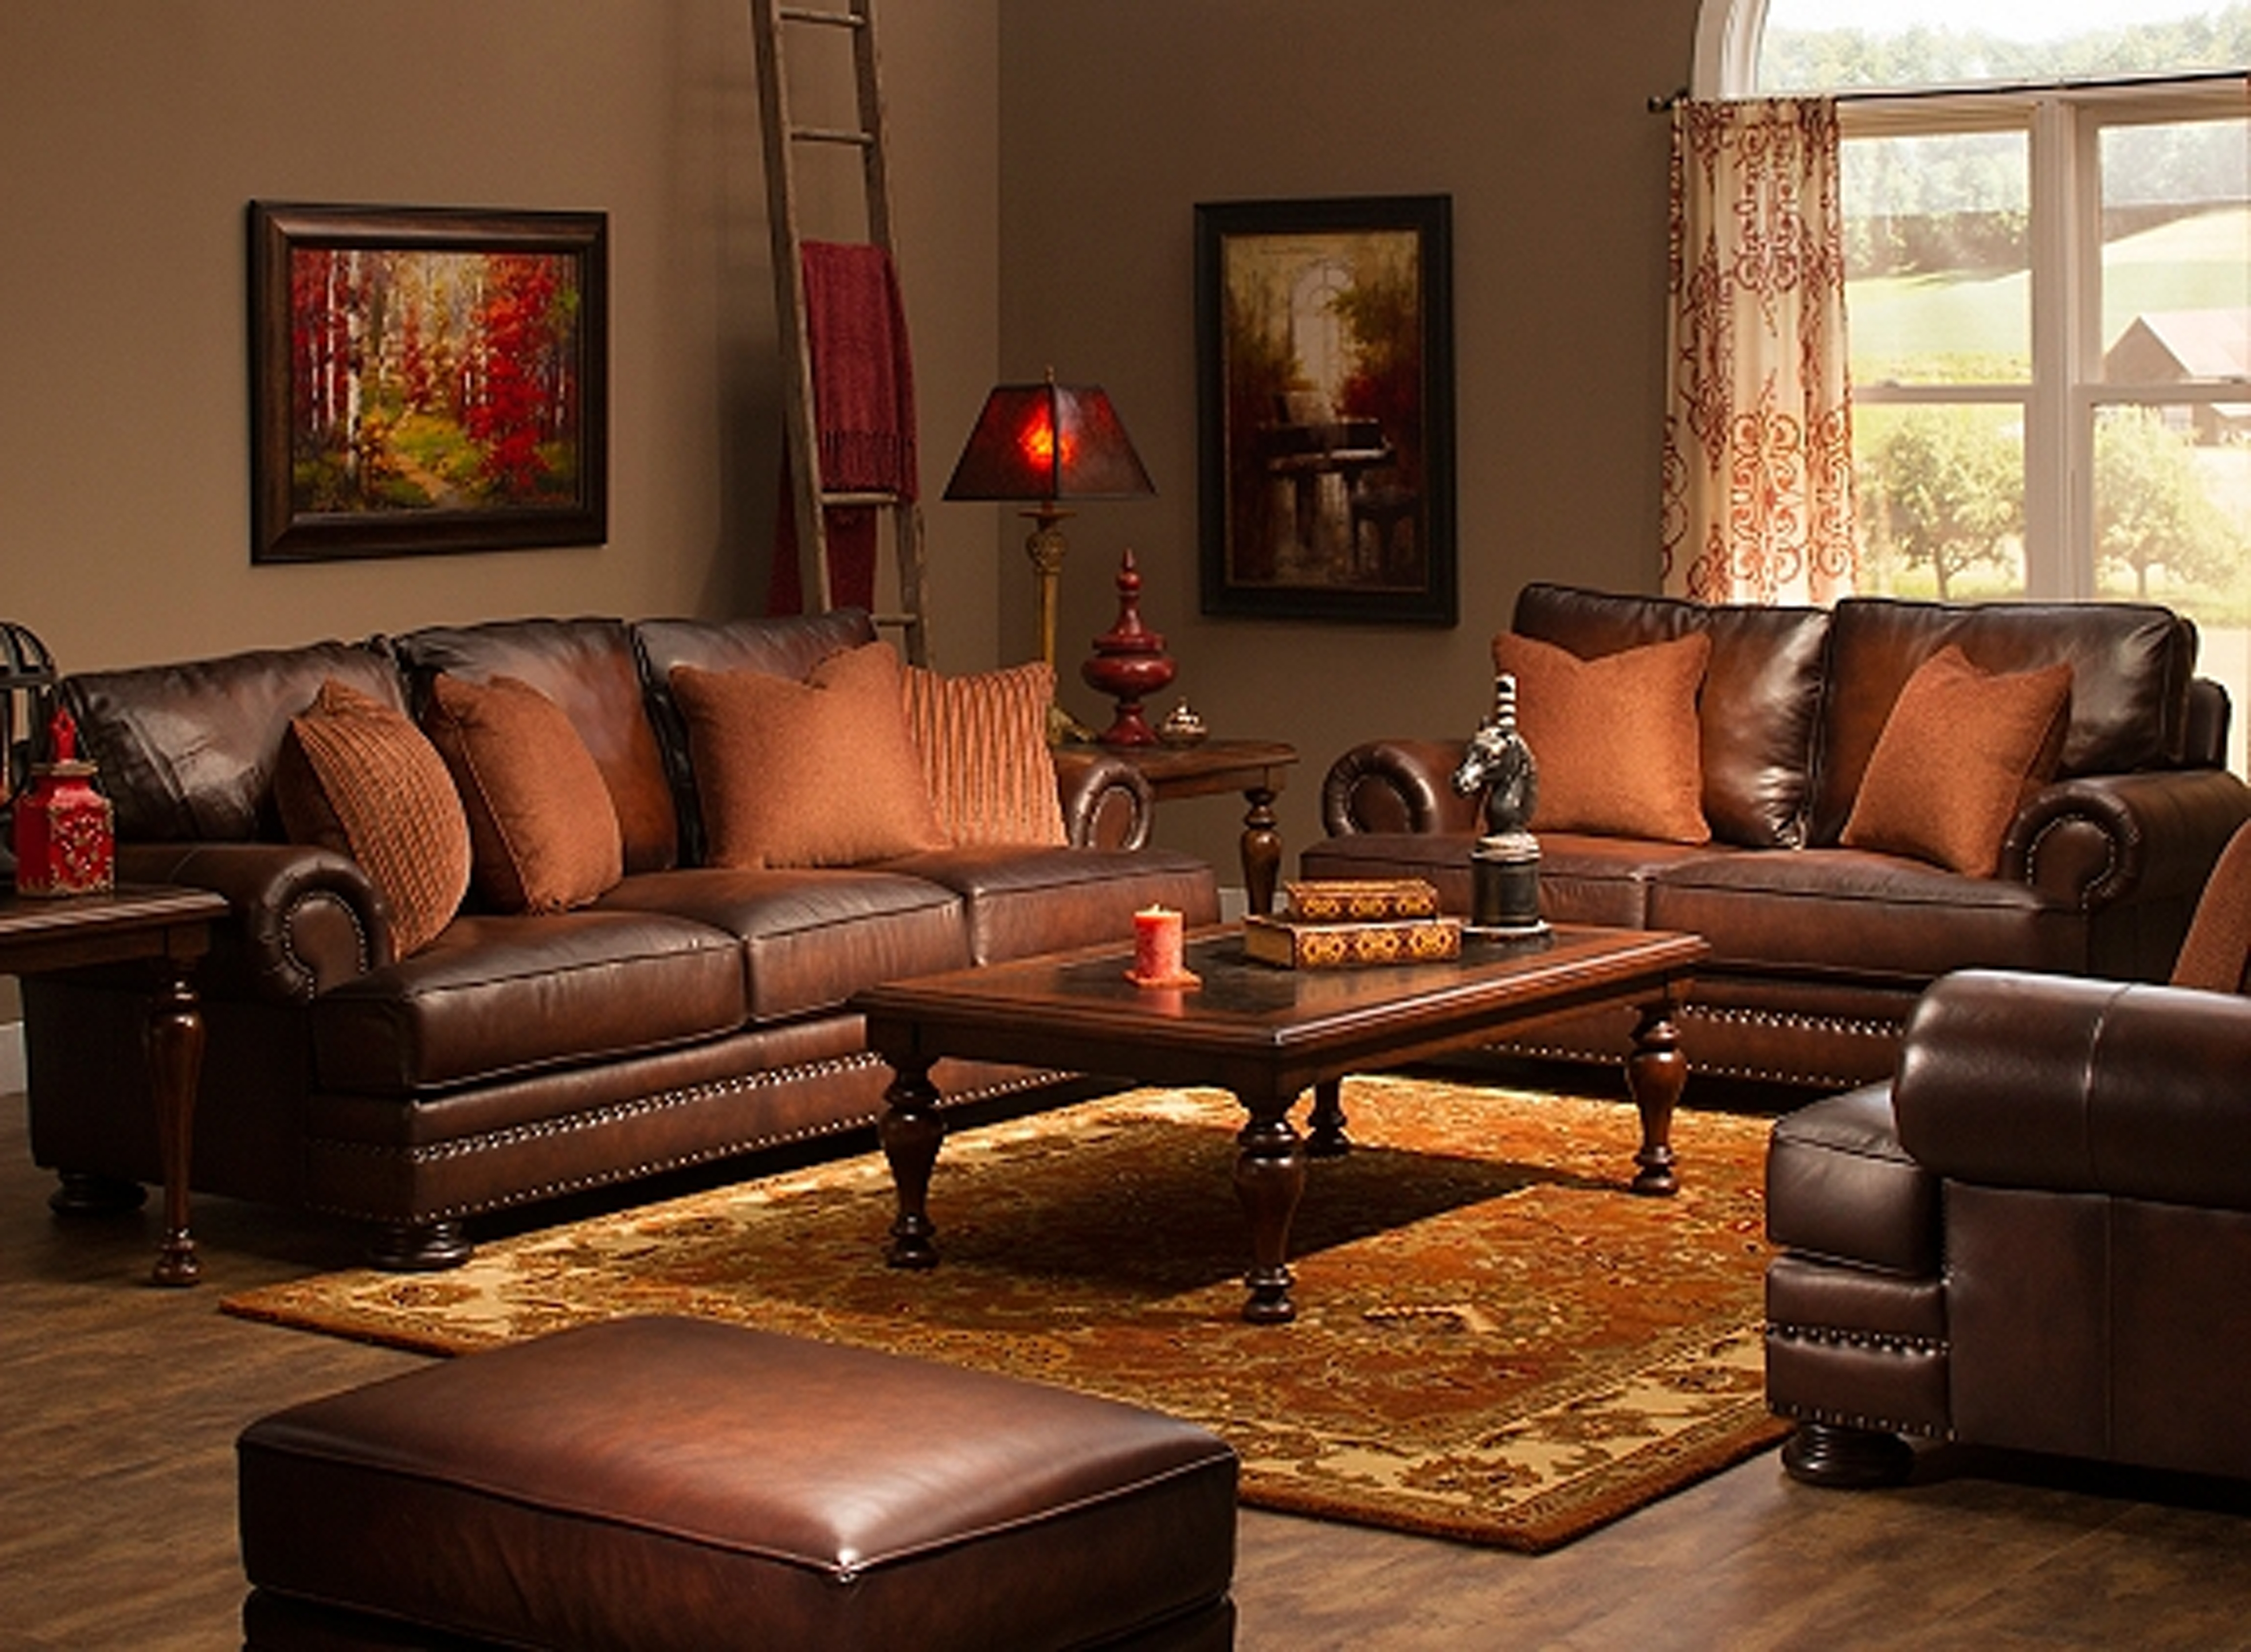 Dayton Ohio Sectional Sofas With Recent Bernhardt Living Room Foster Leather Sofa 031220 – Furniture Fair (View 6 of 20)